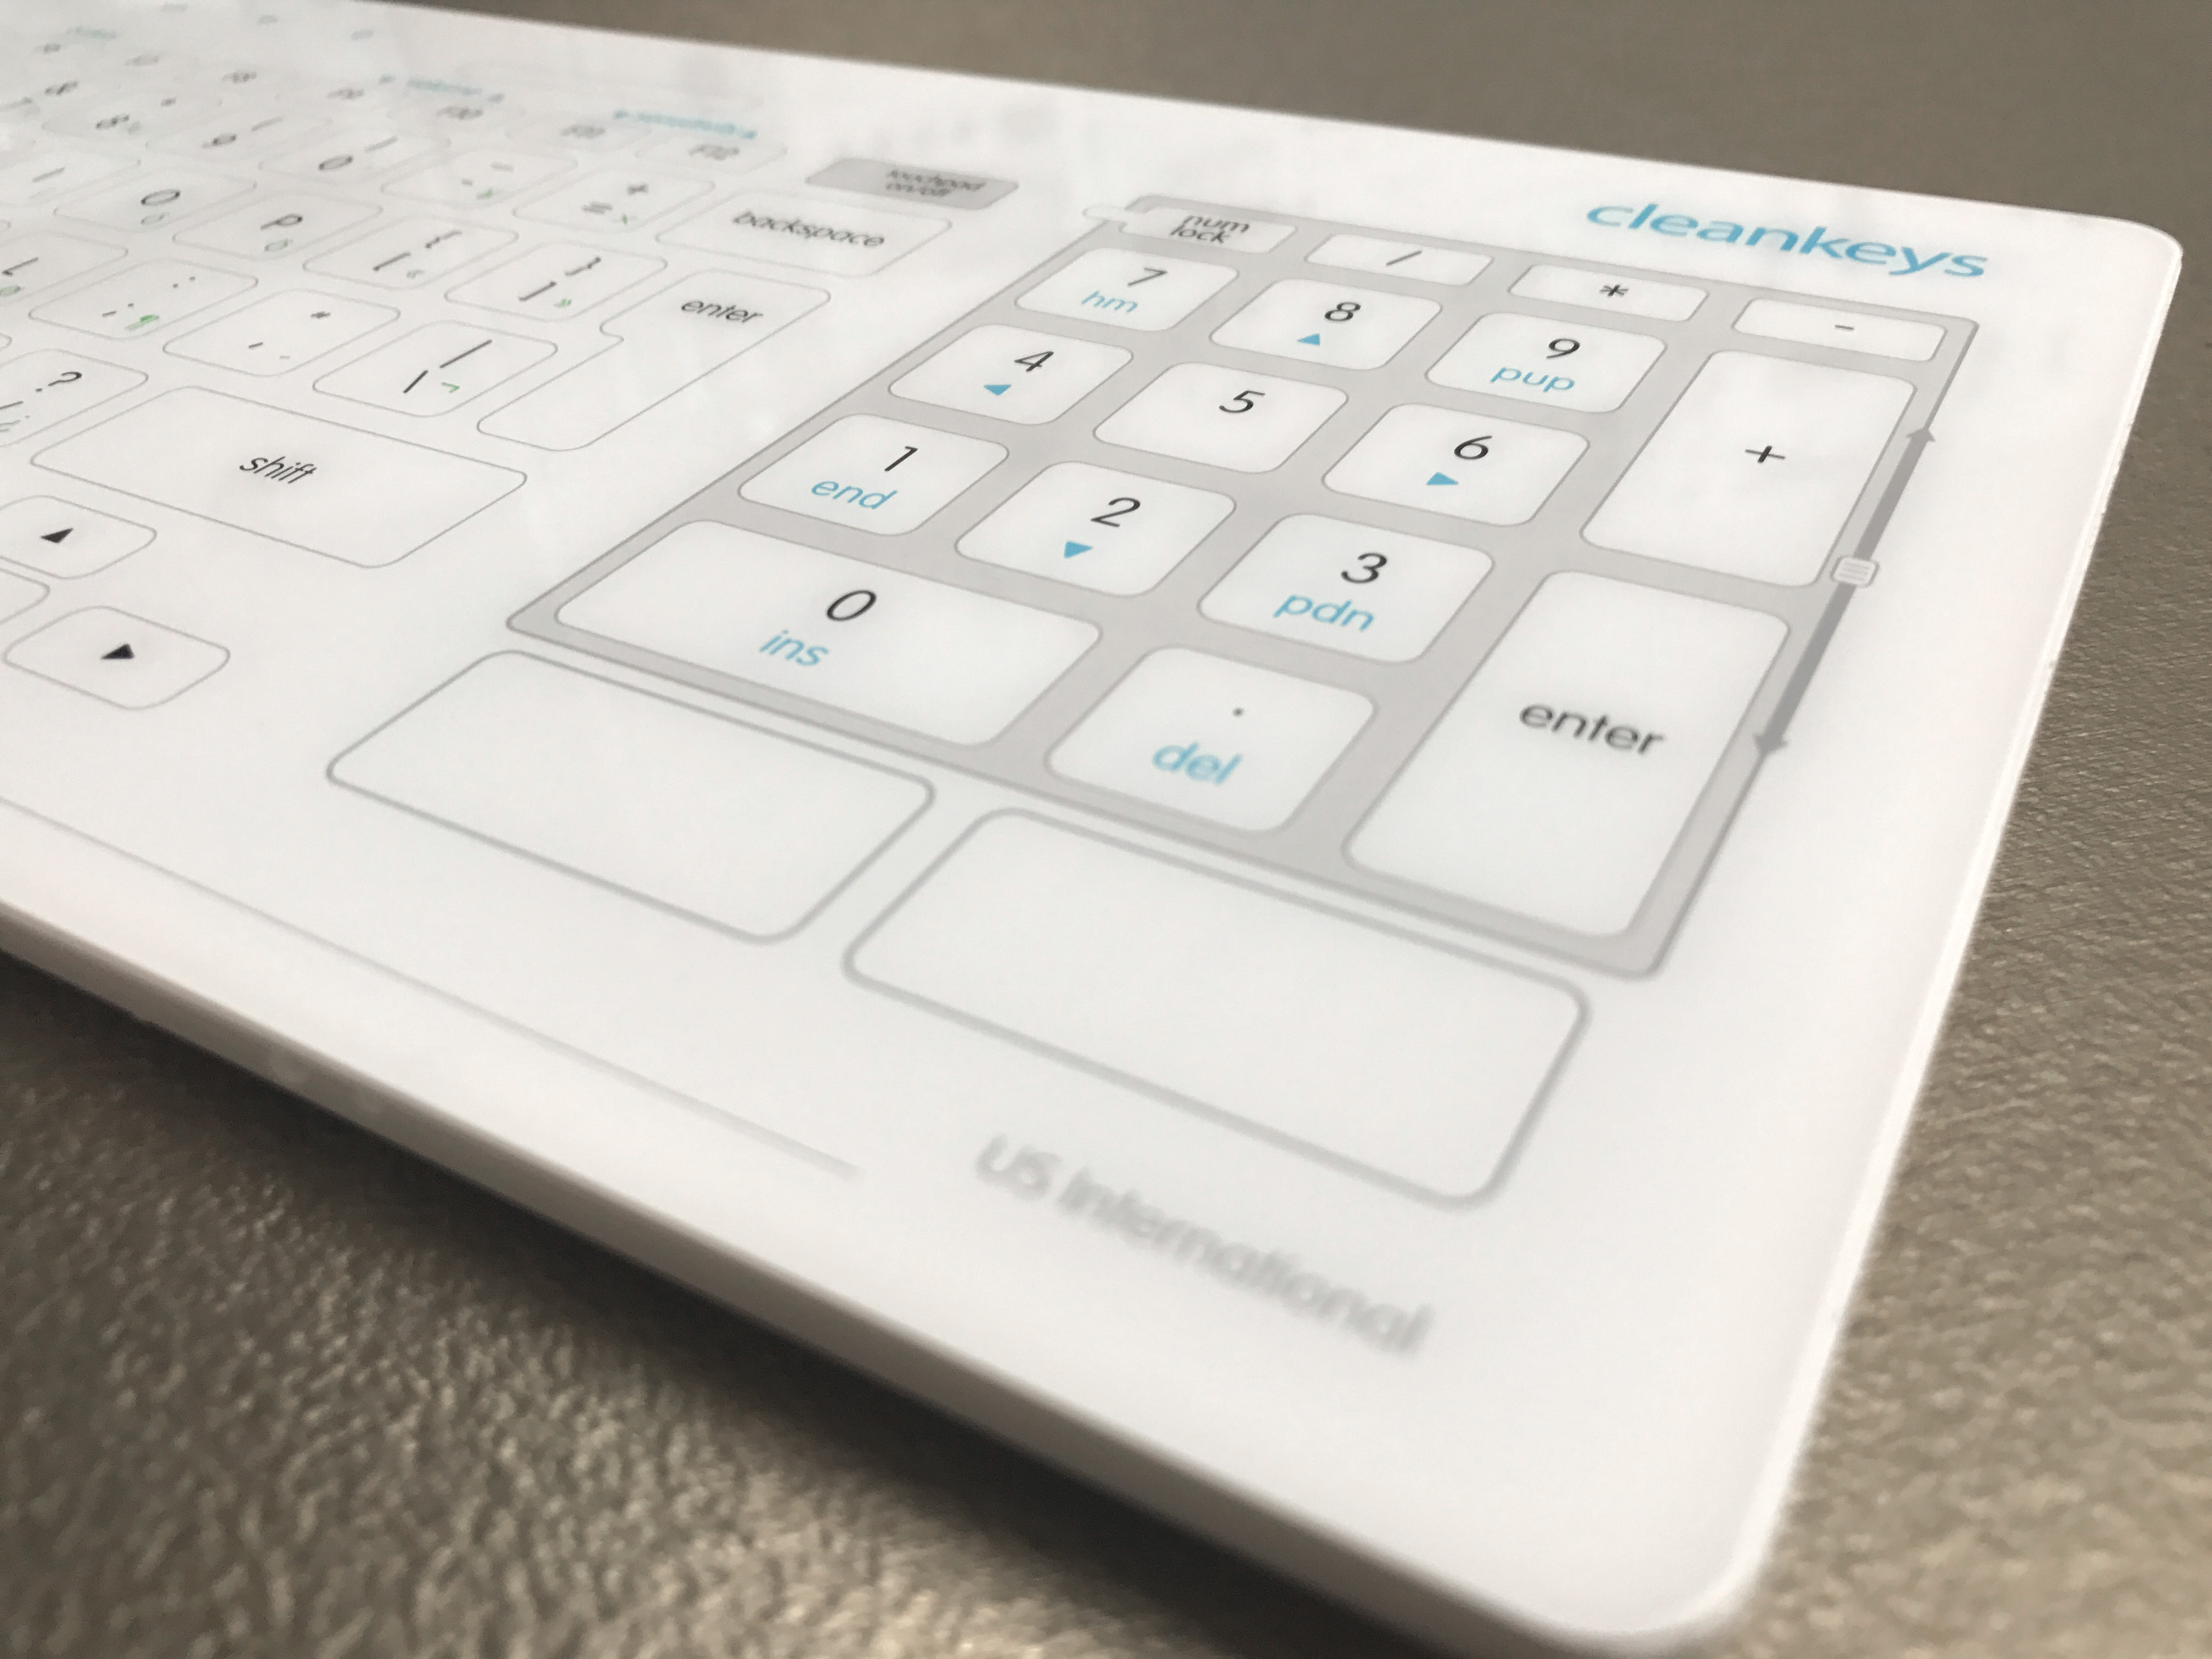 Cleankeys Wireless Keyboard